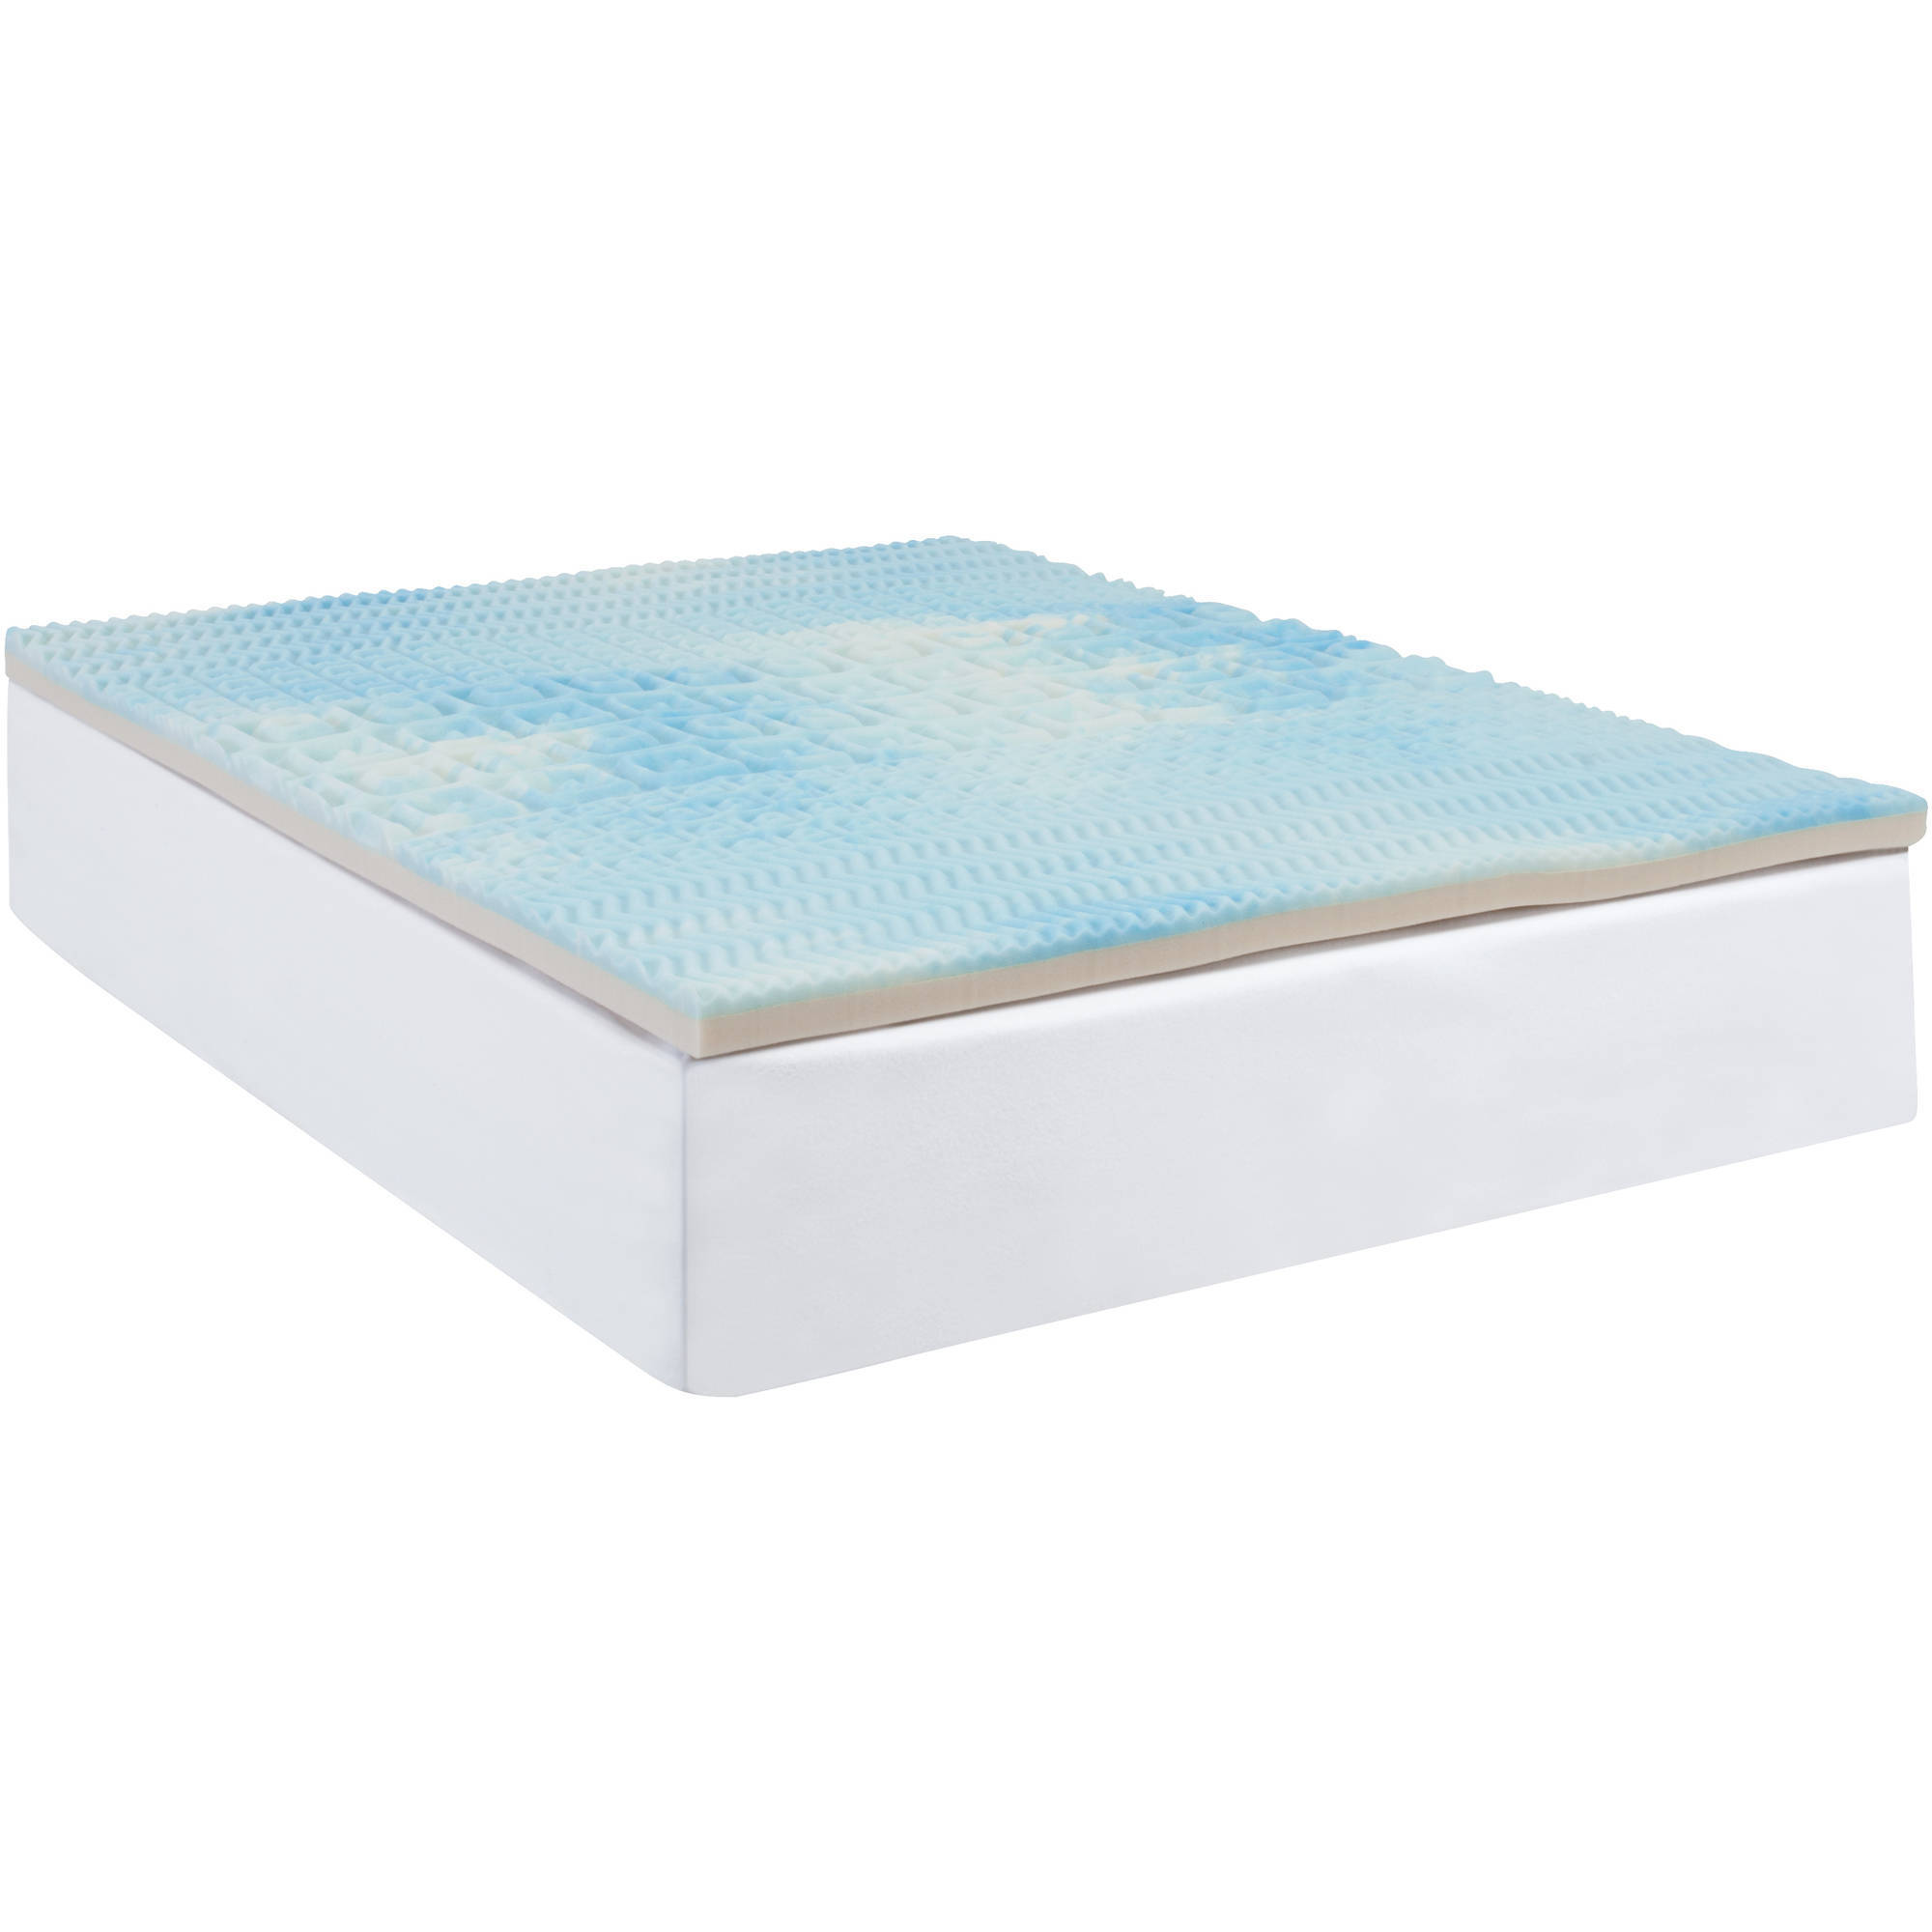 3 inch memory foam mattress topper queen orthopedic bed cover king full twin siz ebay Memory foam king size mattress